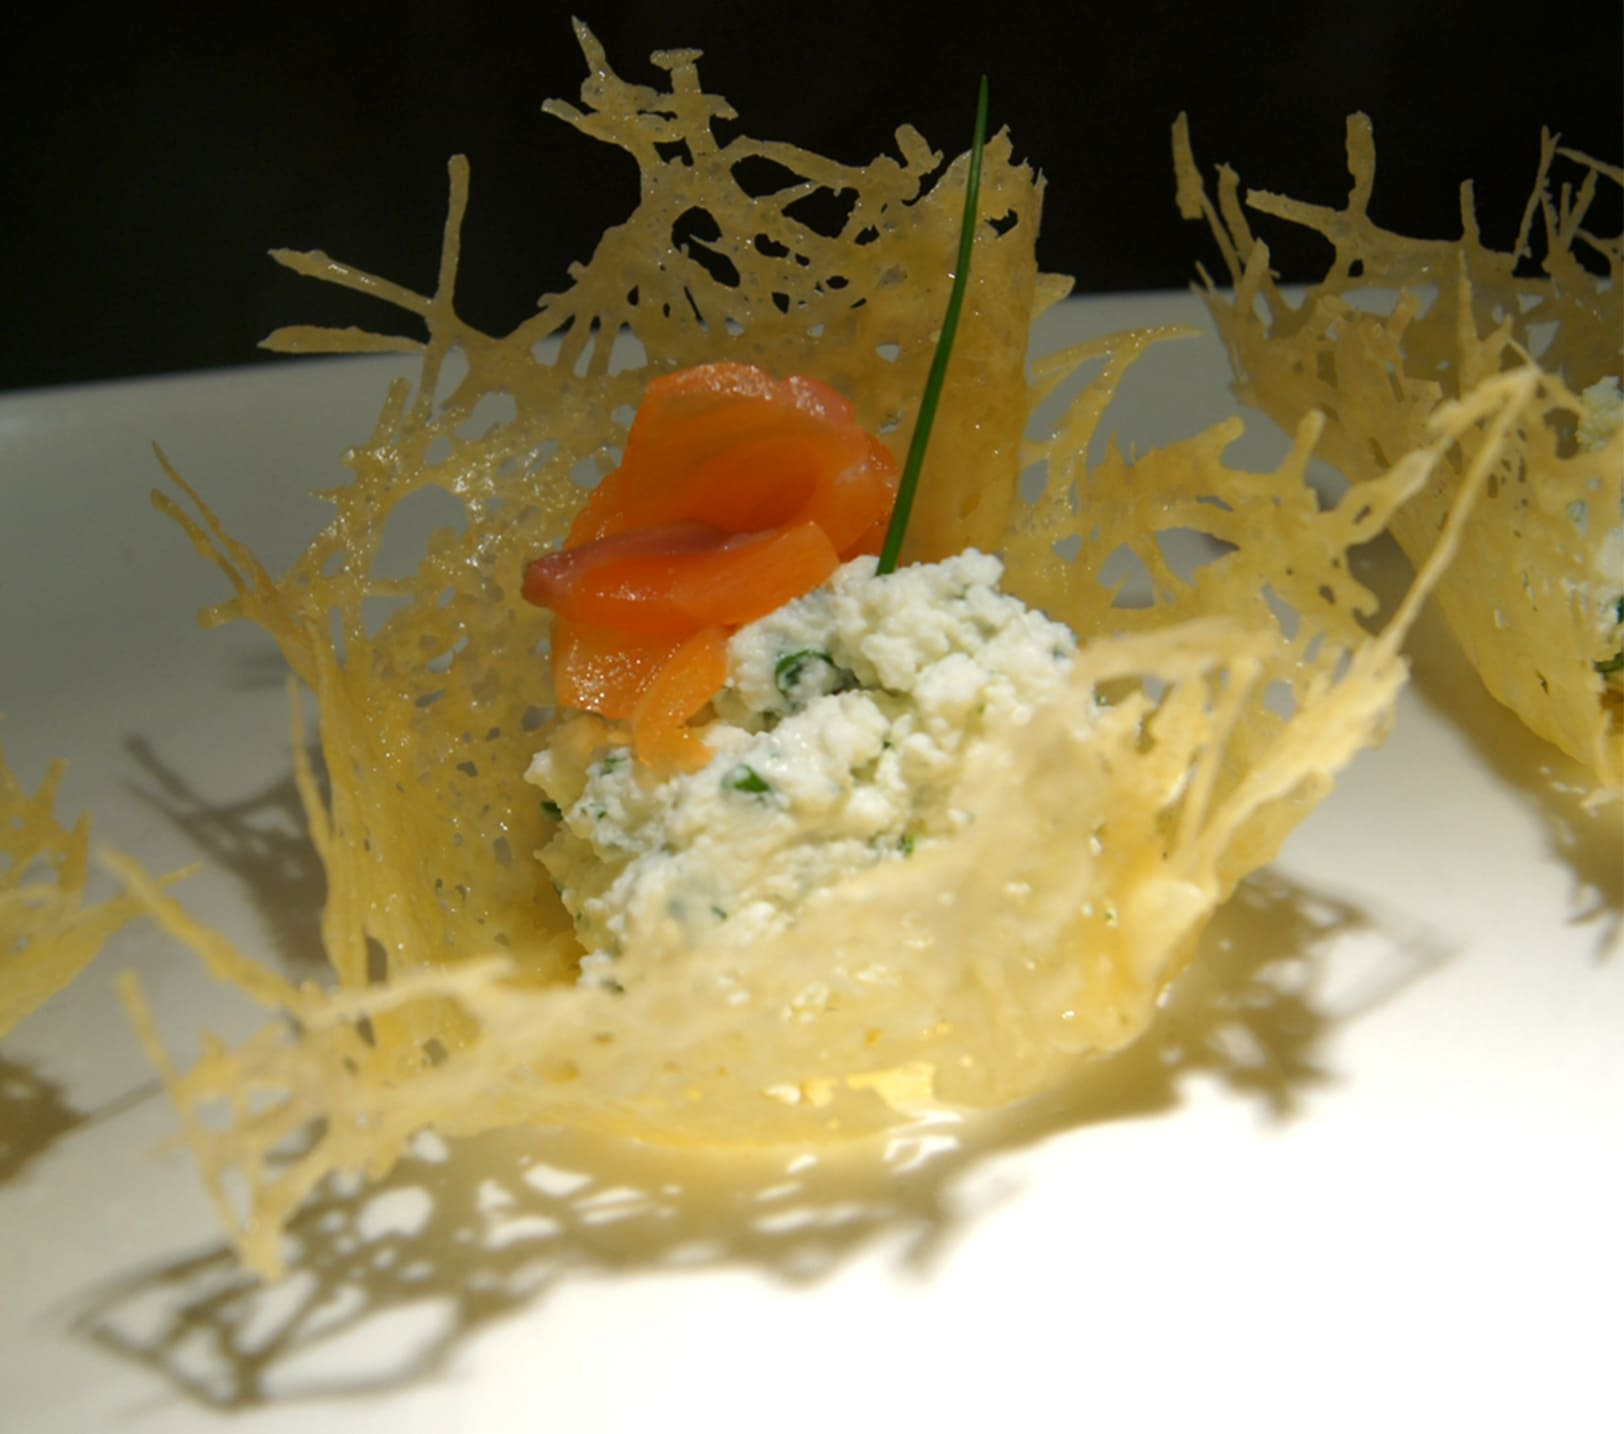 Appetizer with salmon and ricotta in cheese buscets